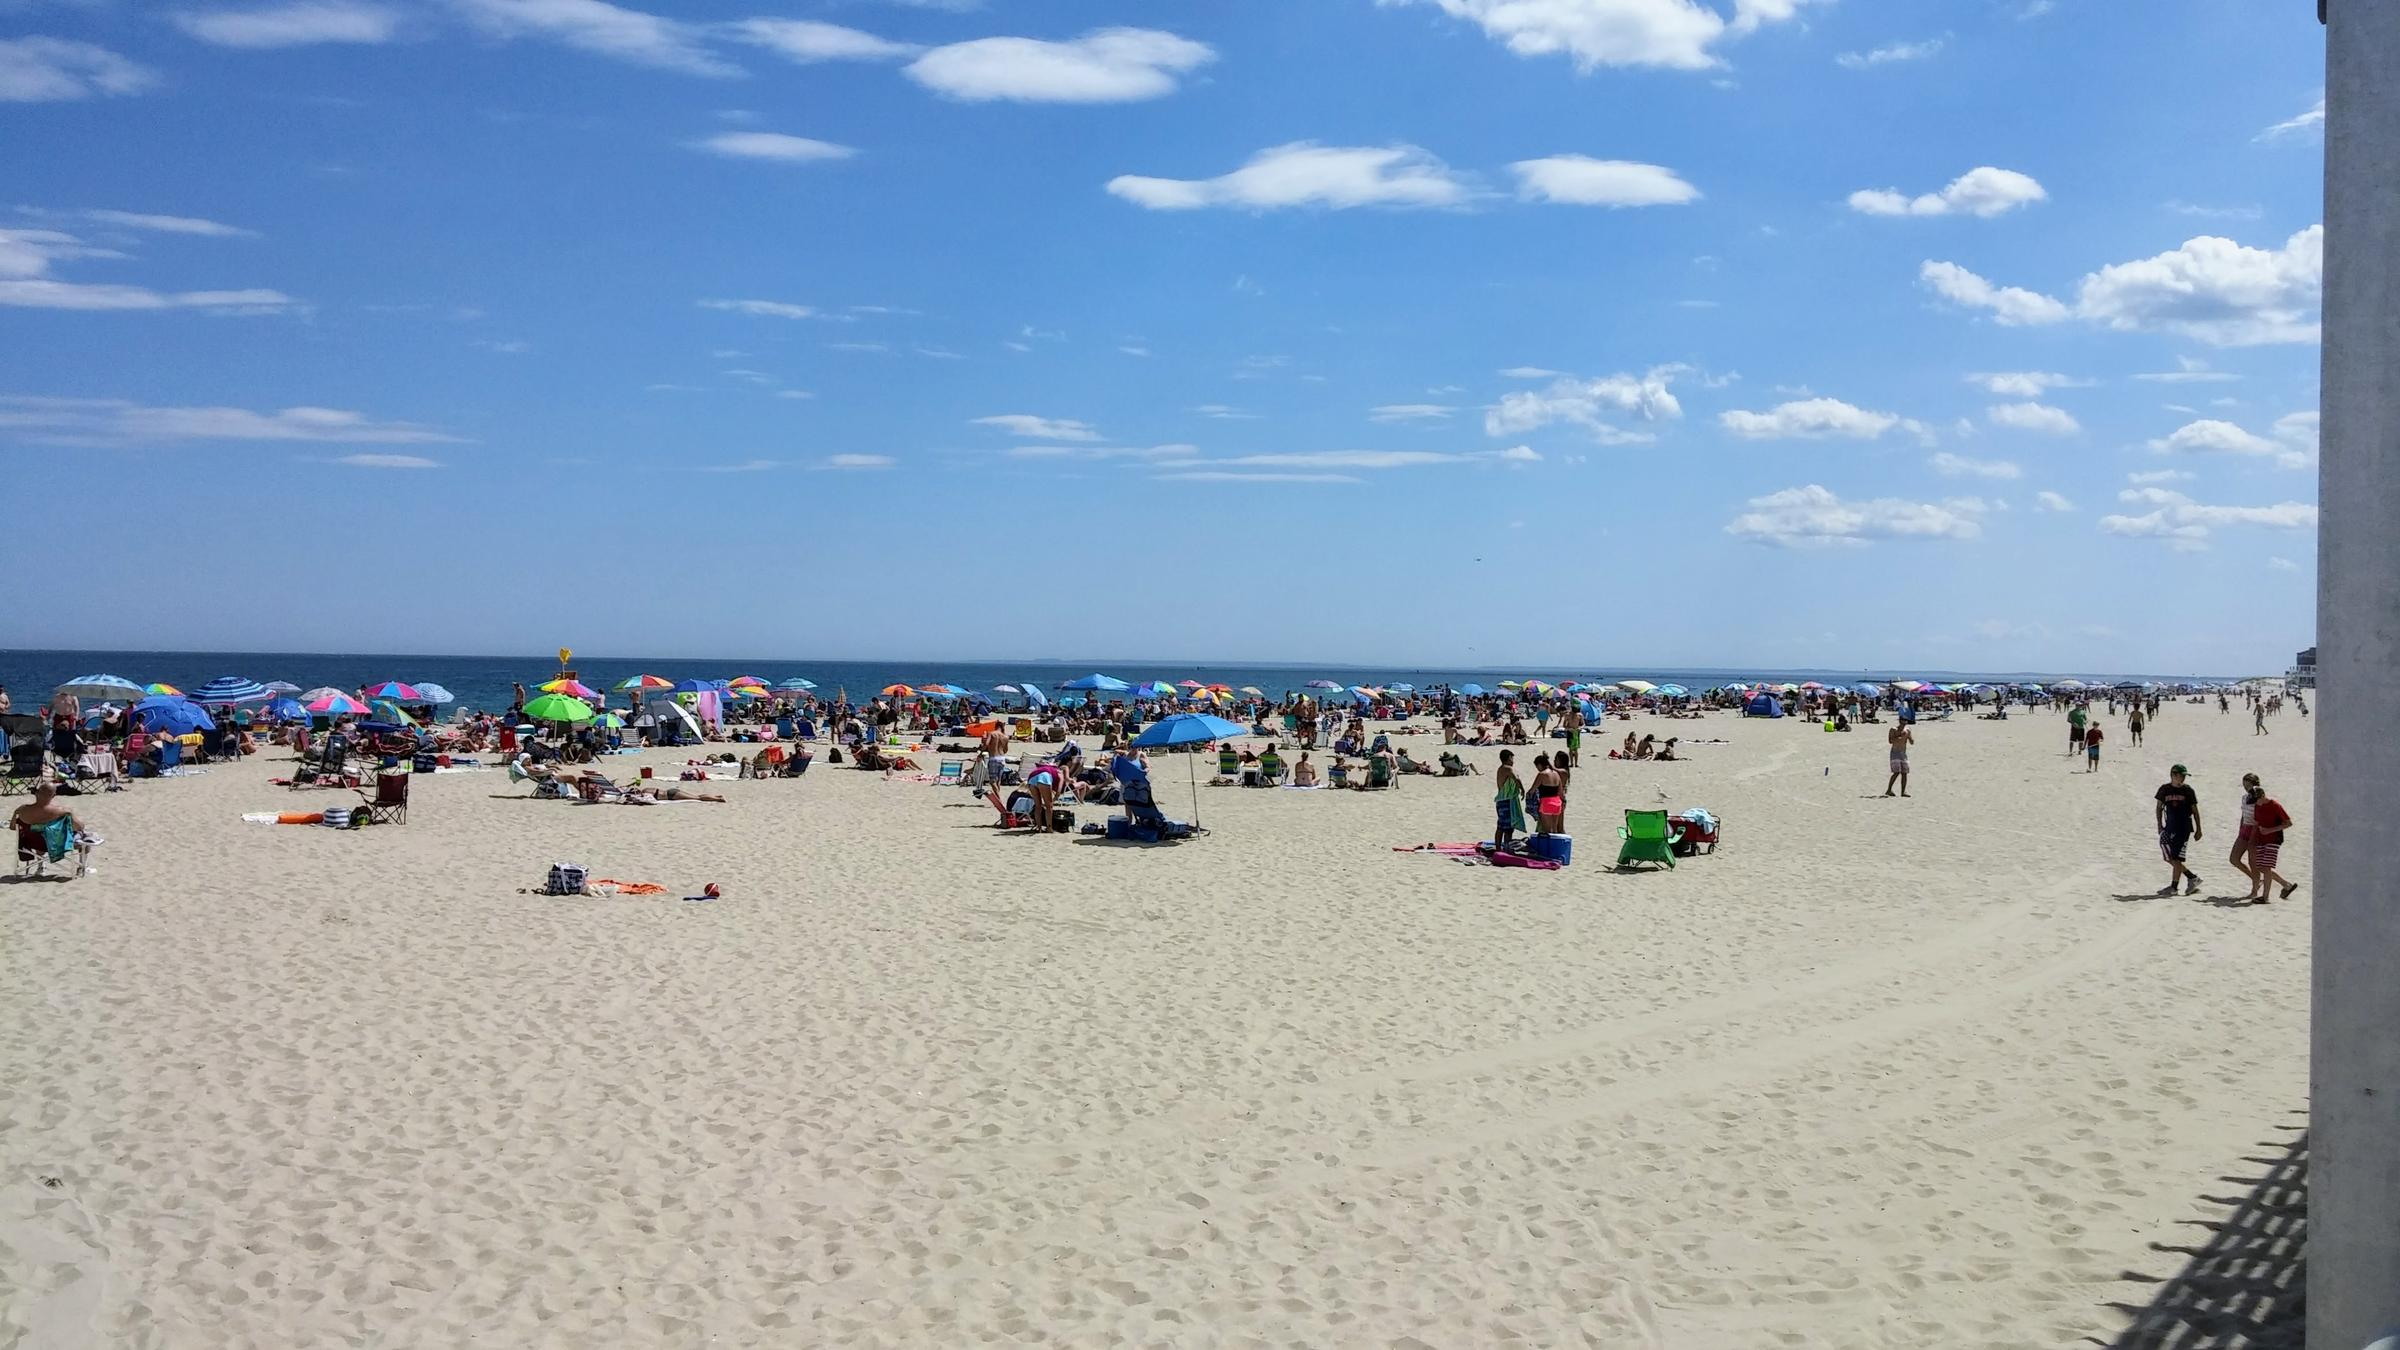 State Rep Calls Oversight Of Hampton Beach Tyrannical